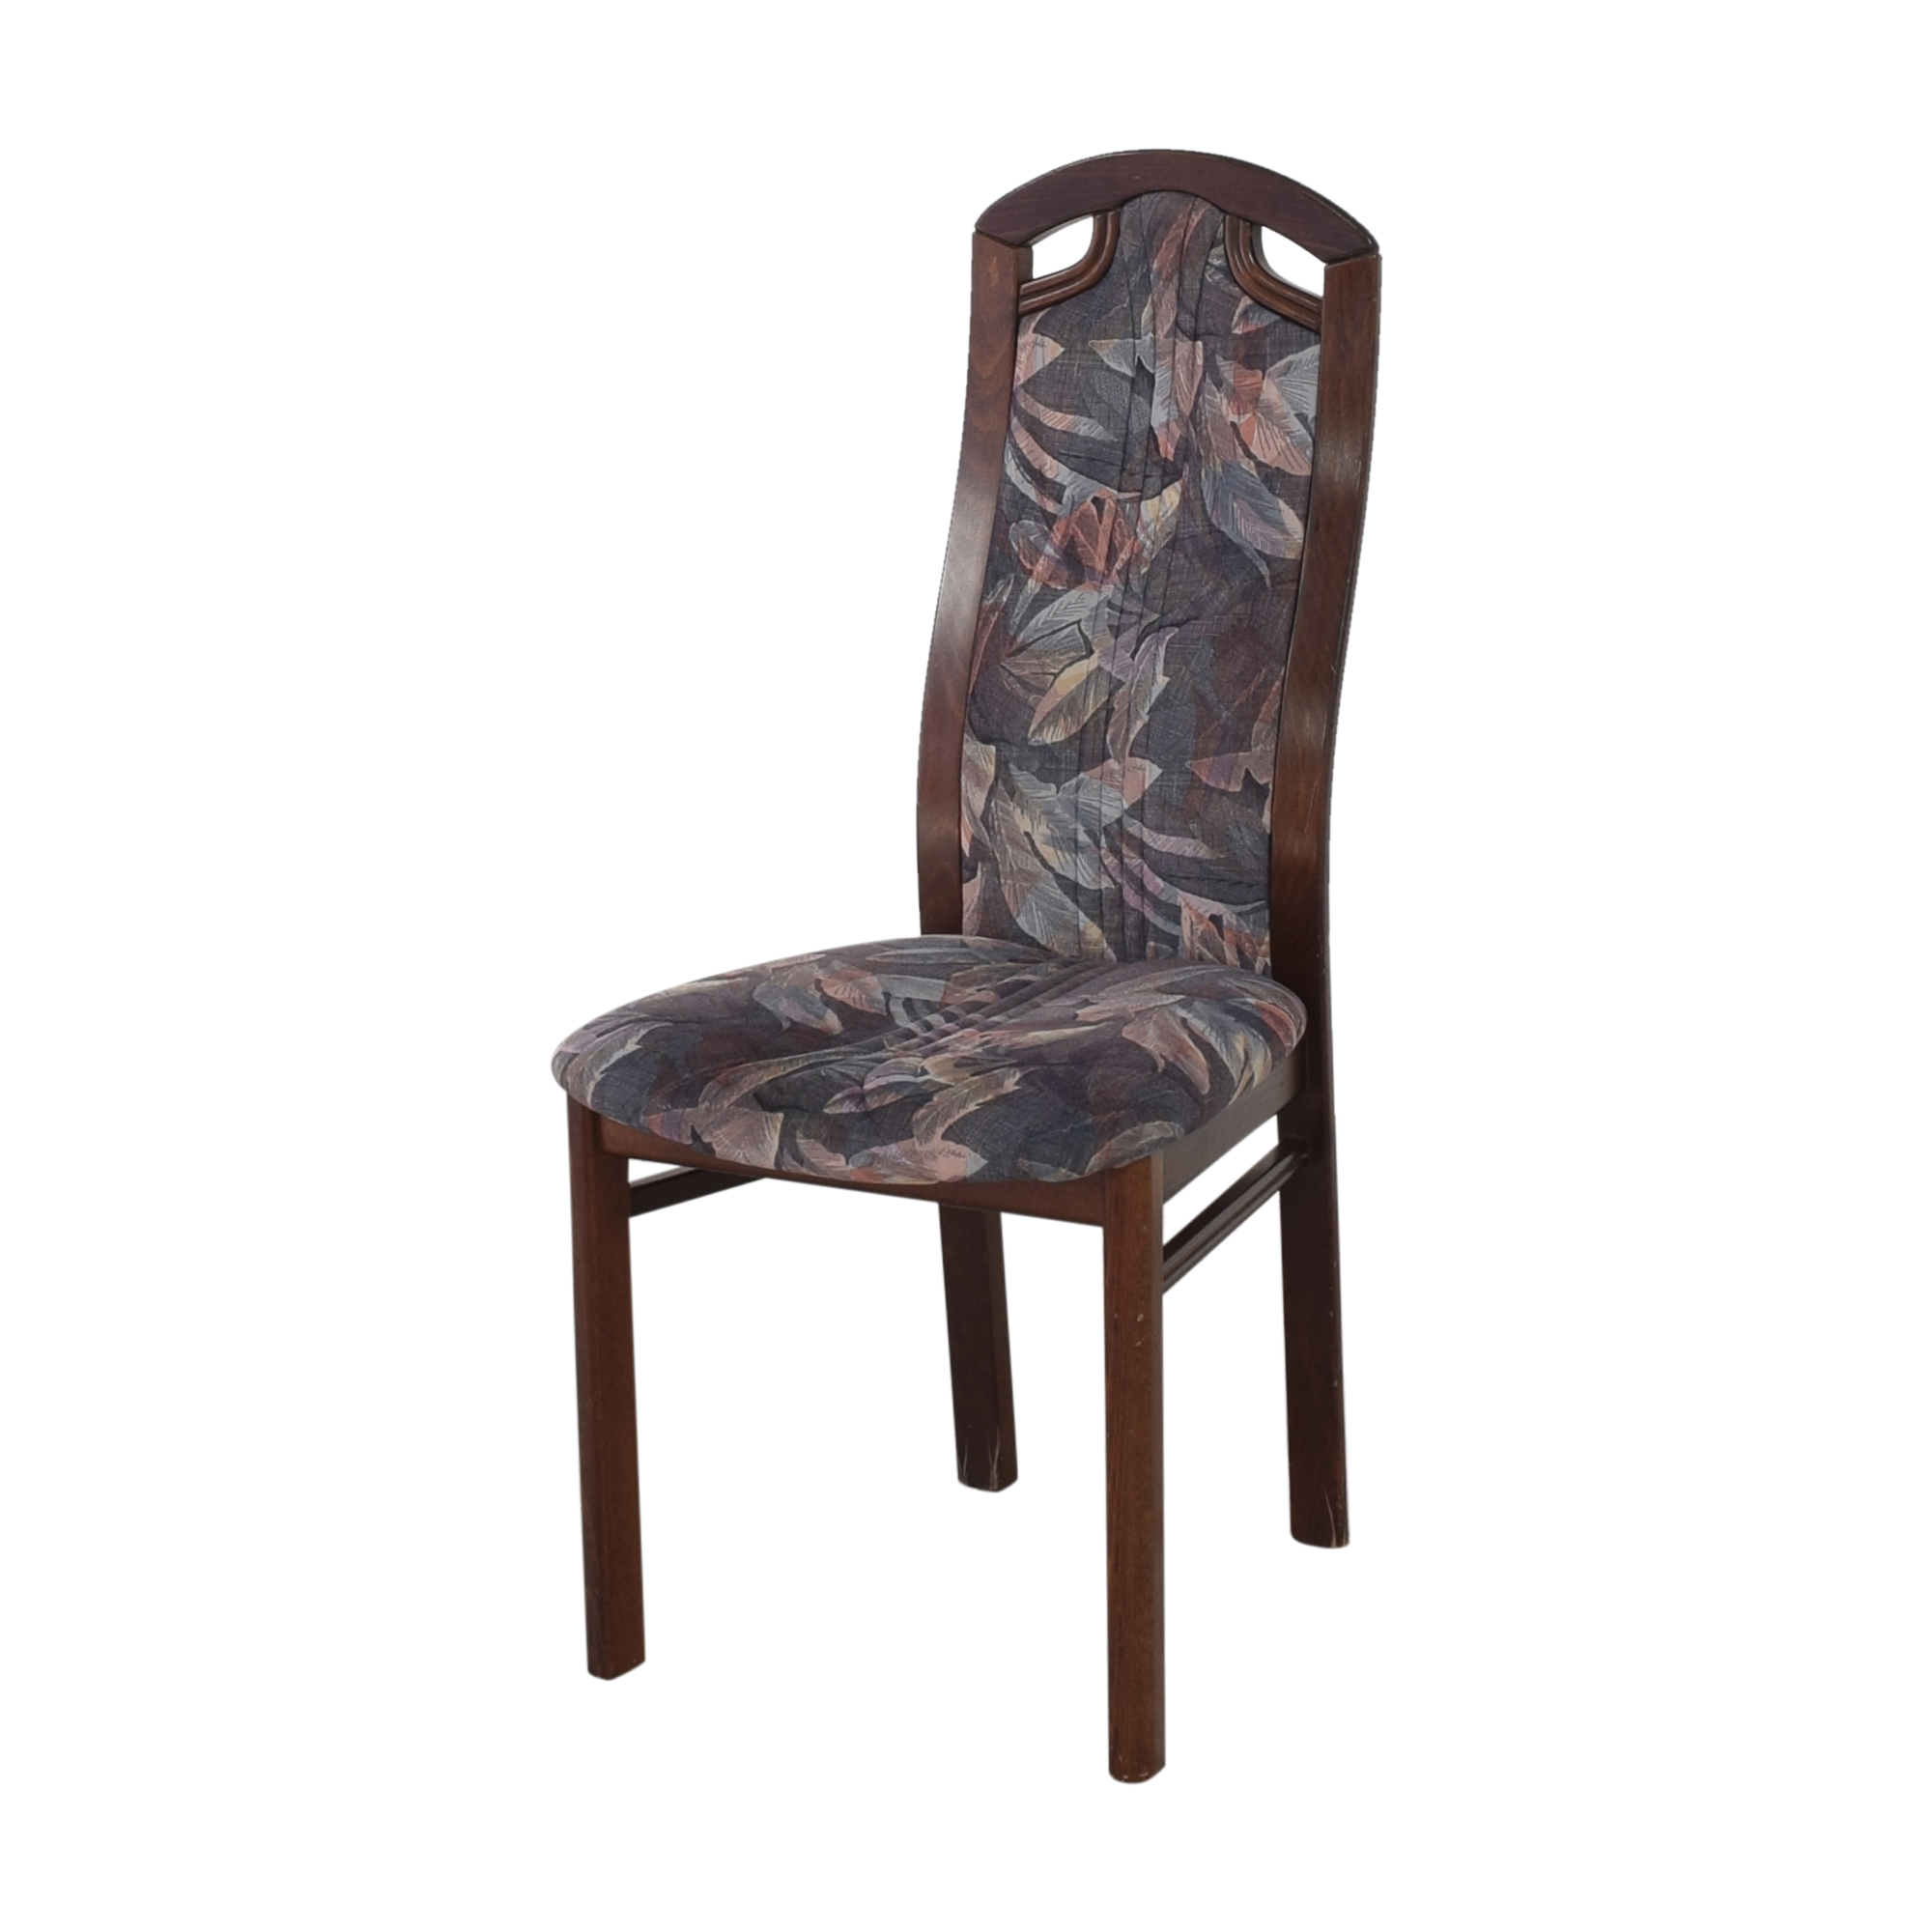 Benze Collection Benze Collection High Back Dining Chairs